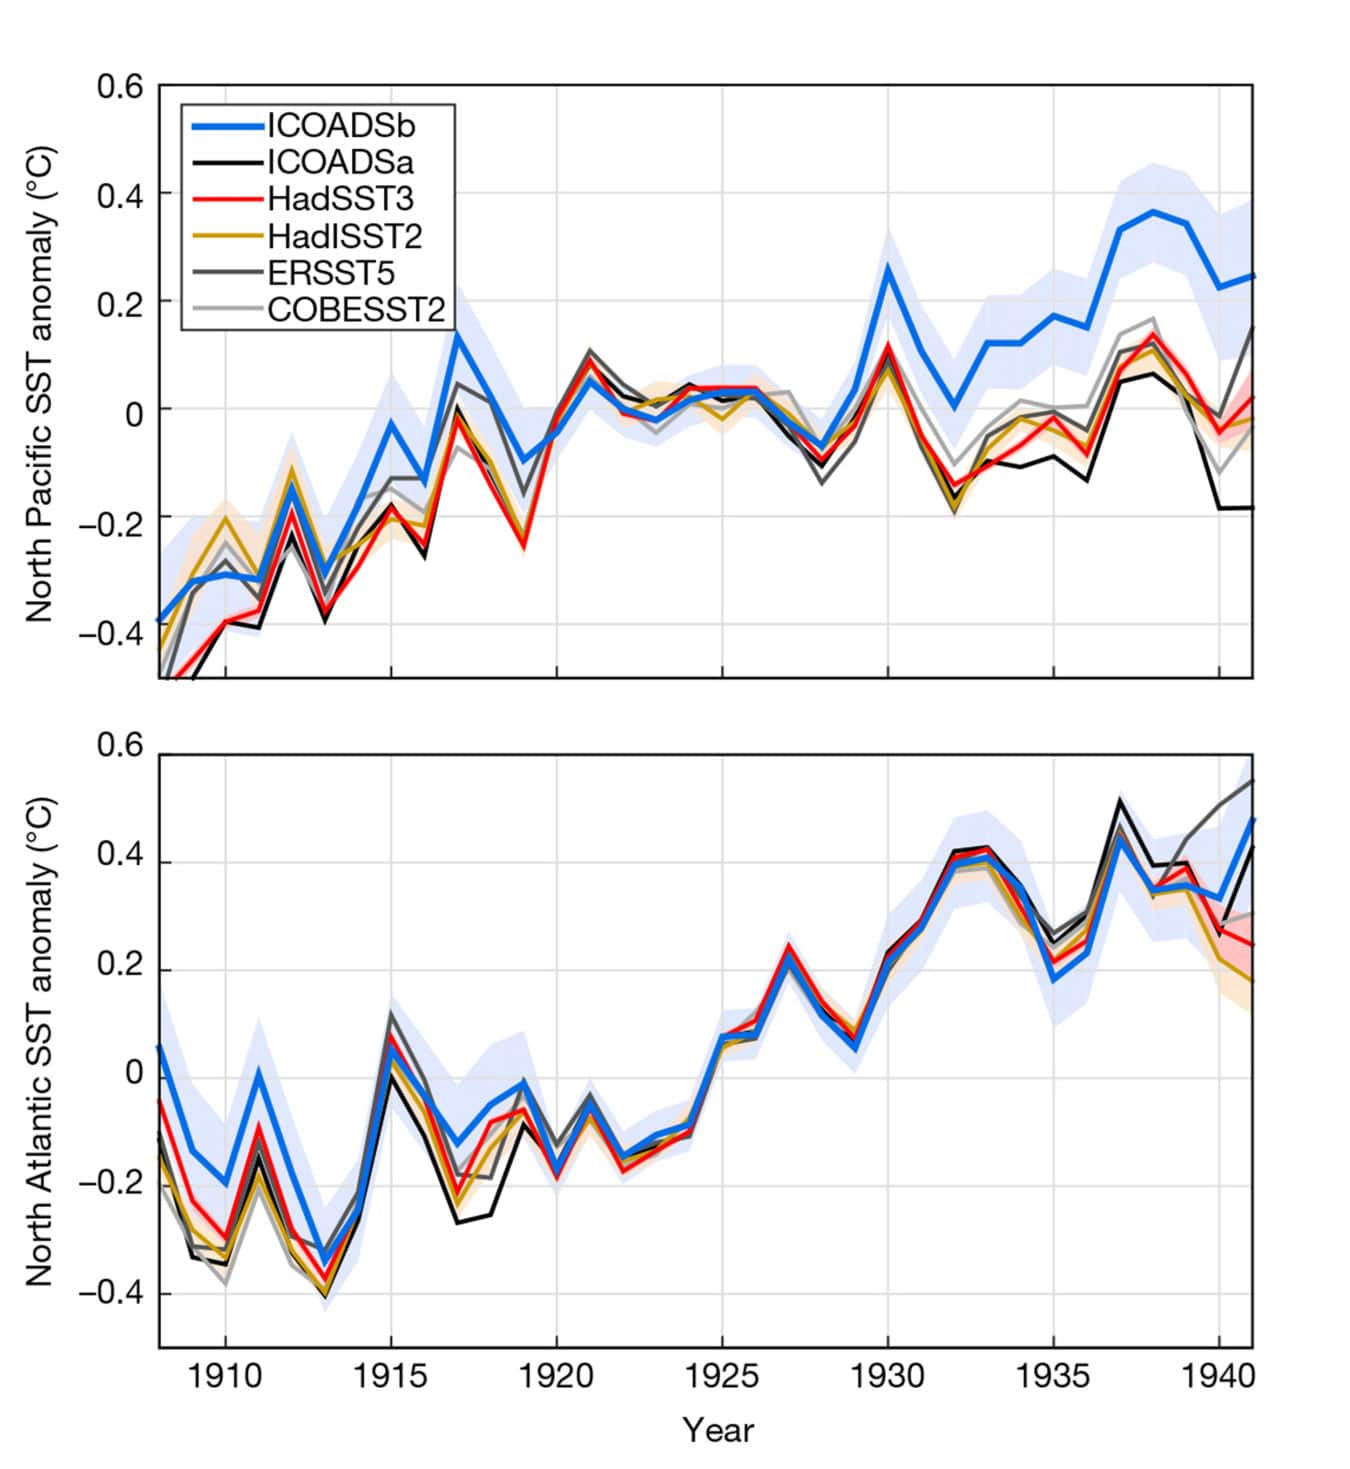 This chart shows annual sea surface temperature changes from different datasets in the North Pacific (top) and North Atlantic (bottom). The blue line indicates the corrected data from this research. It shows greater warming in the North Pacific and less warming in the North Atlantic relative to previous estimates.